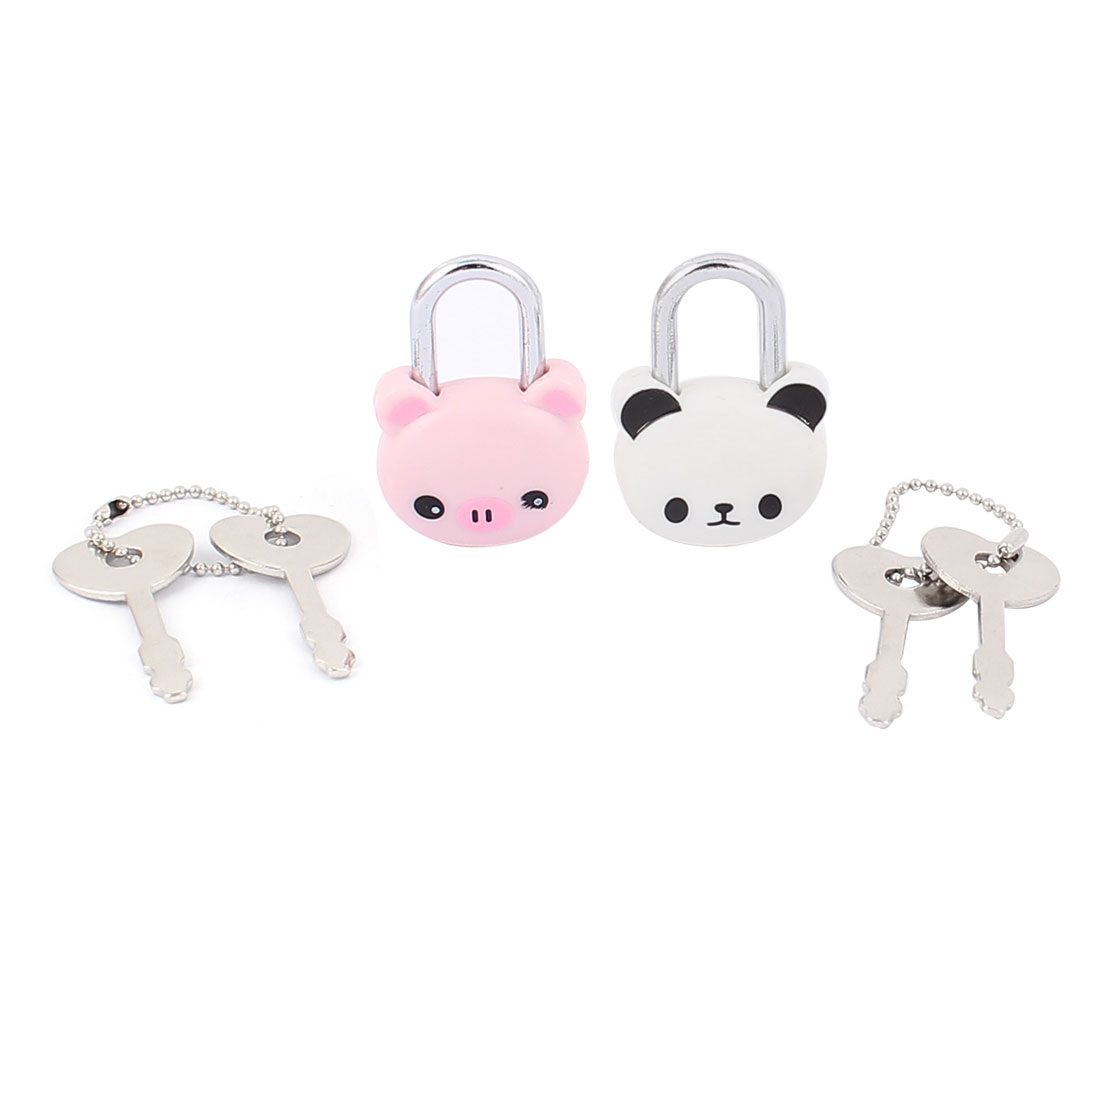 Cabinet Jewlery Drawer Suitcase Panda Pig Head Shape Security Lock Padlock 2Pcs